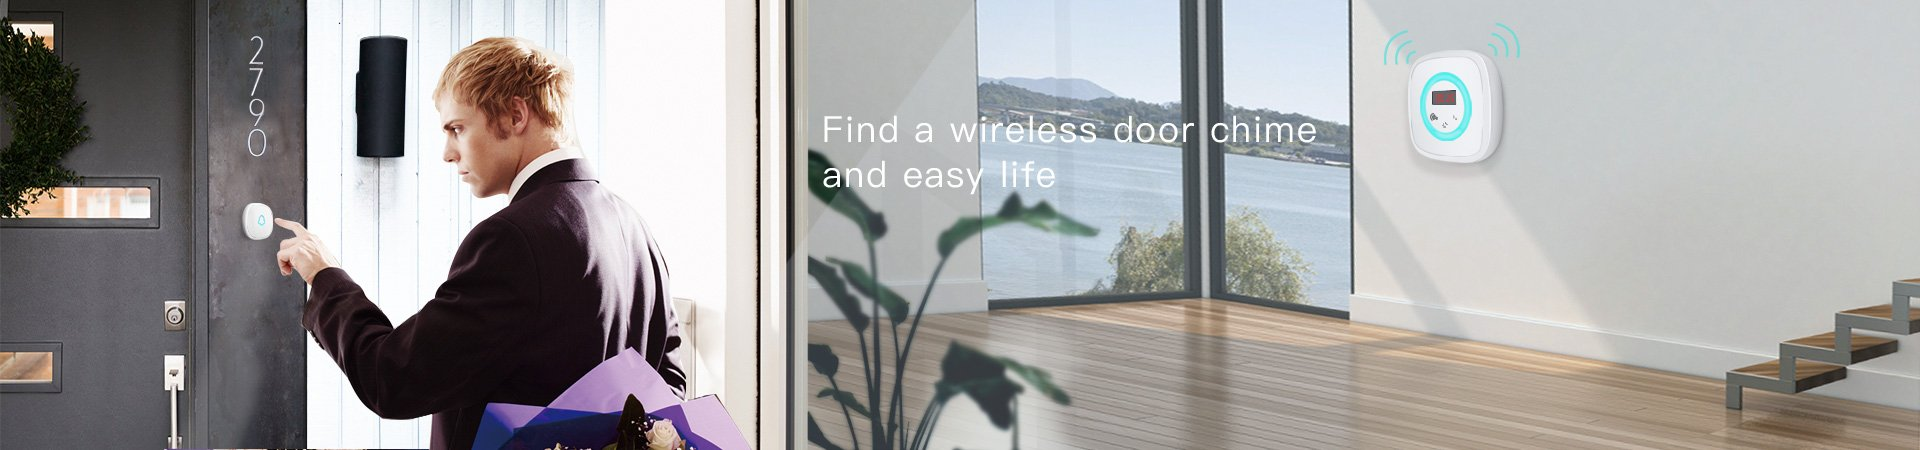 Find a wireless door chime and easy life